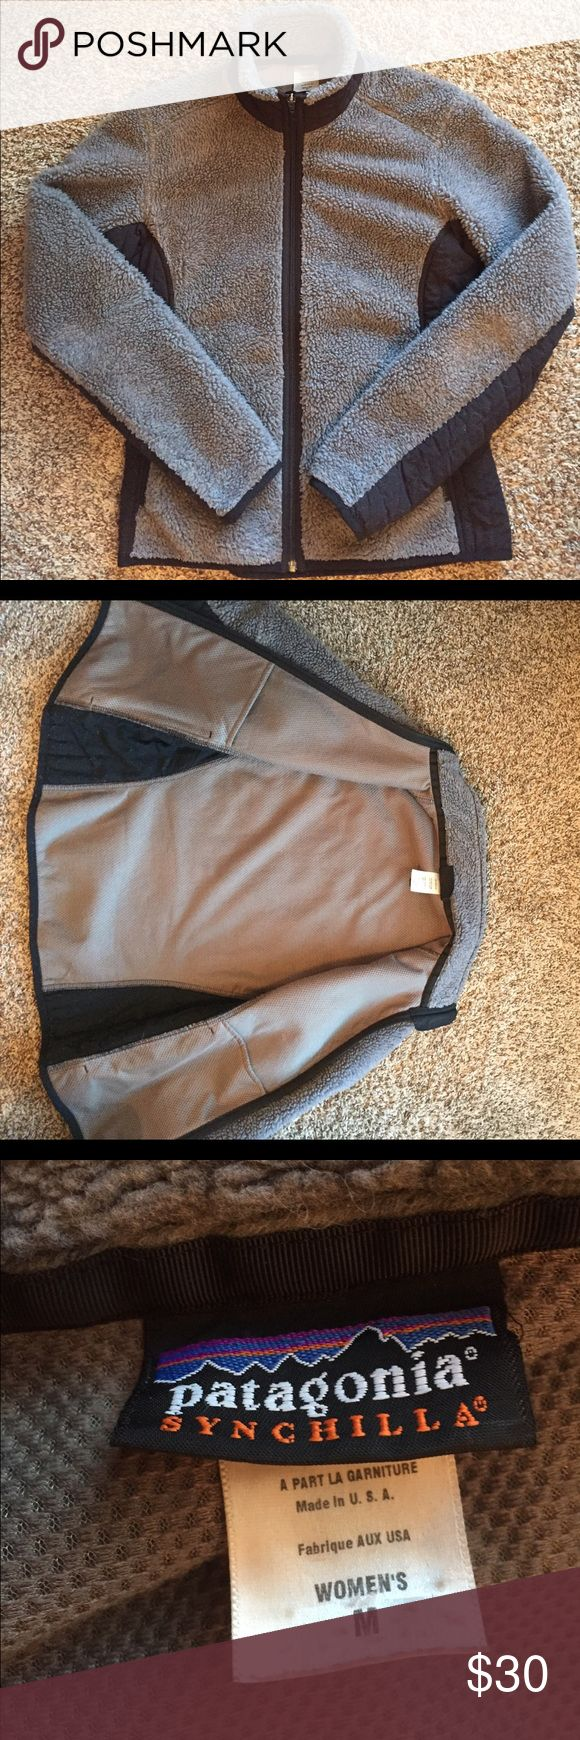 Patagonia Synchilla Jacket Medium 💯 % Polyester. Great Patagonia full zip jacket, previously loved. I JUST bought it used and it fits snug (medium) and I was looking for big/baggy. Nothing wrong with the jacket, just needs a new home! Patagonia Jackets & Coats